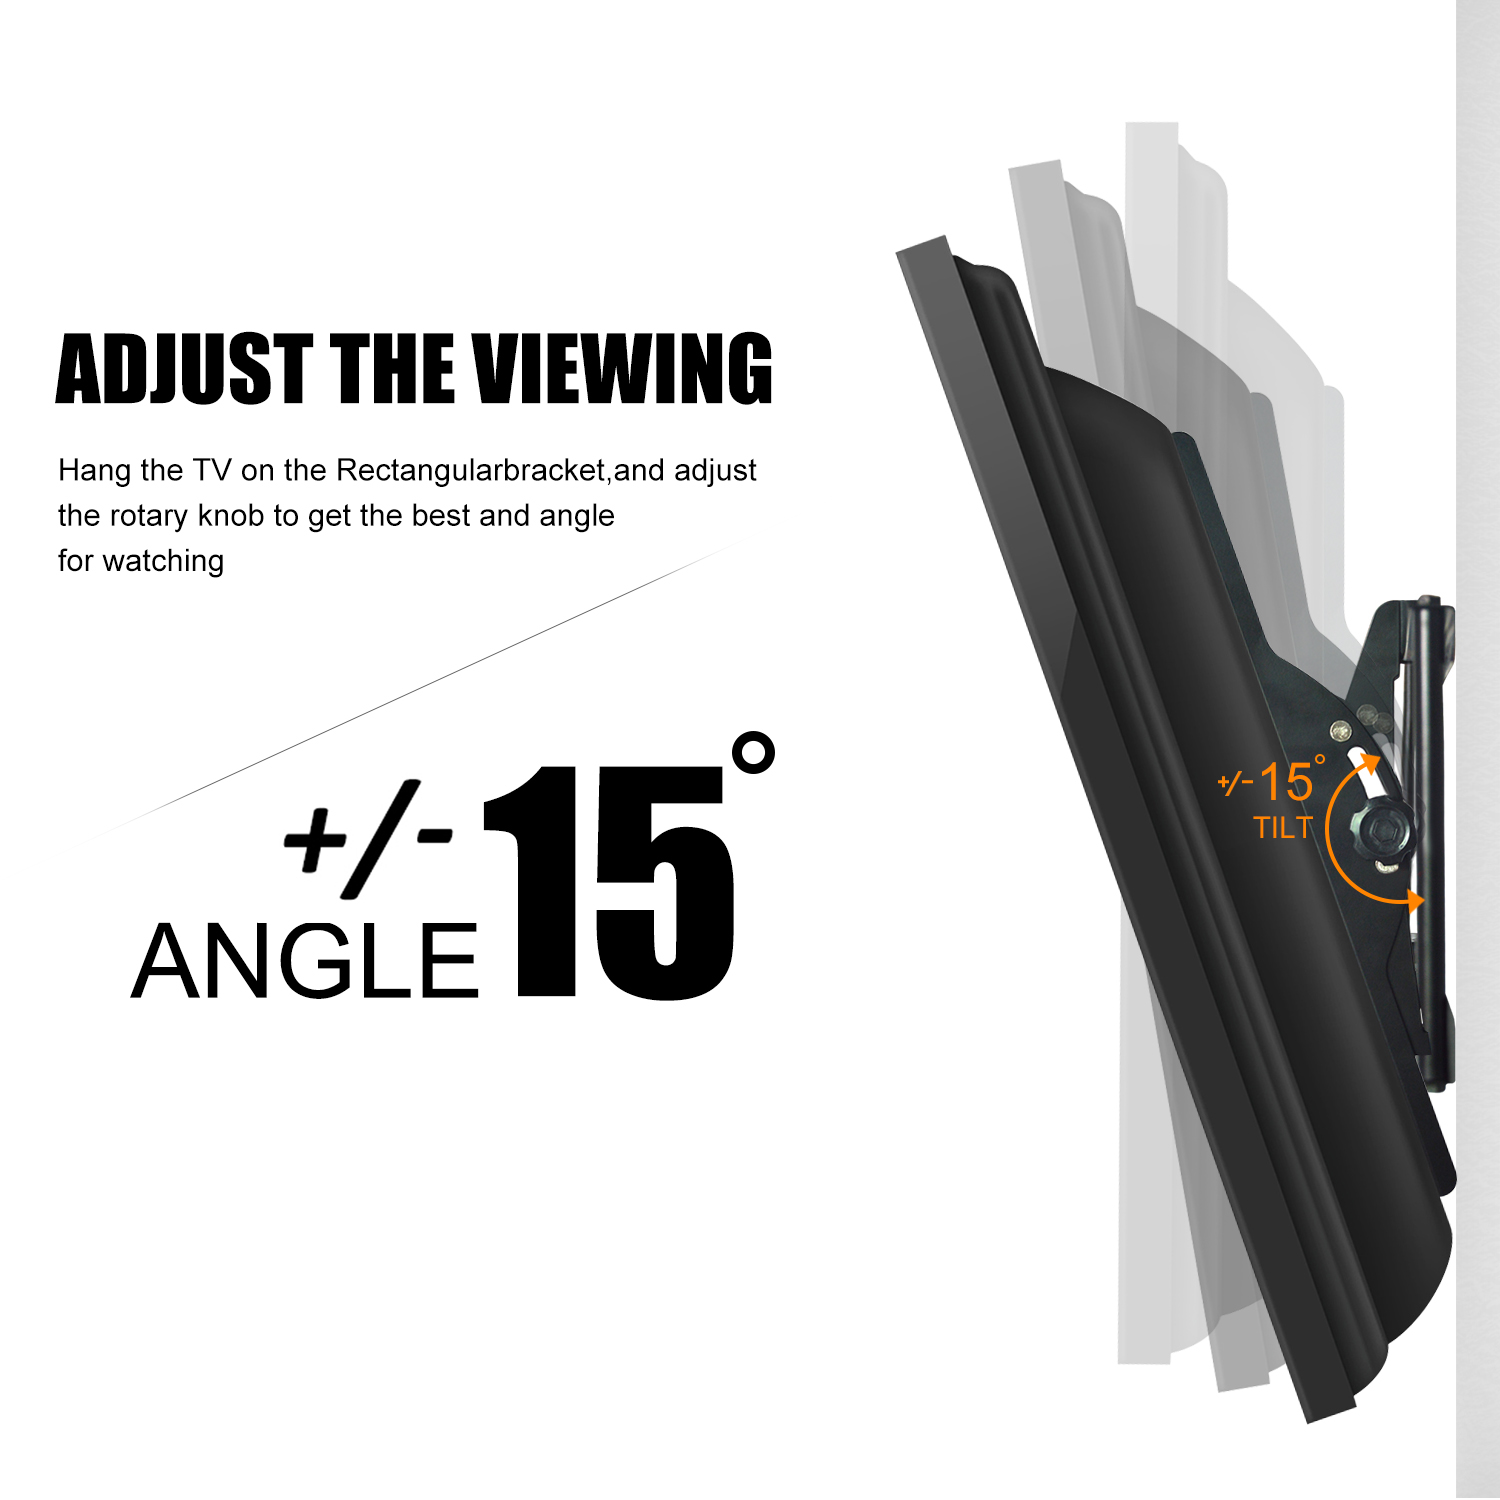 Universal LED/LCD Tilting TV Wall Mount Brackets with HDMI Cable, Suitable  for Most Flatscreen TVs between 37 to 70 inches